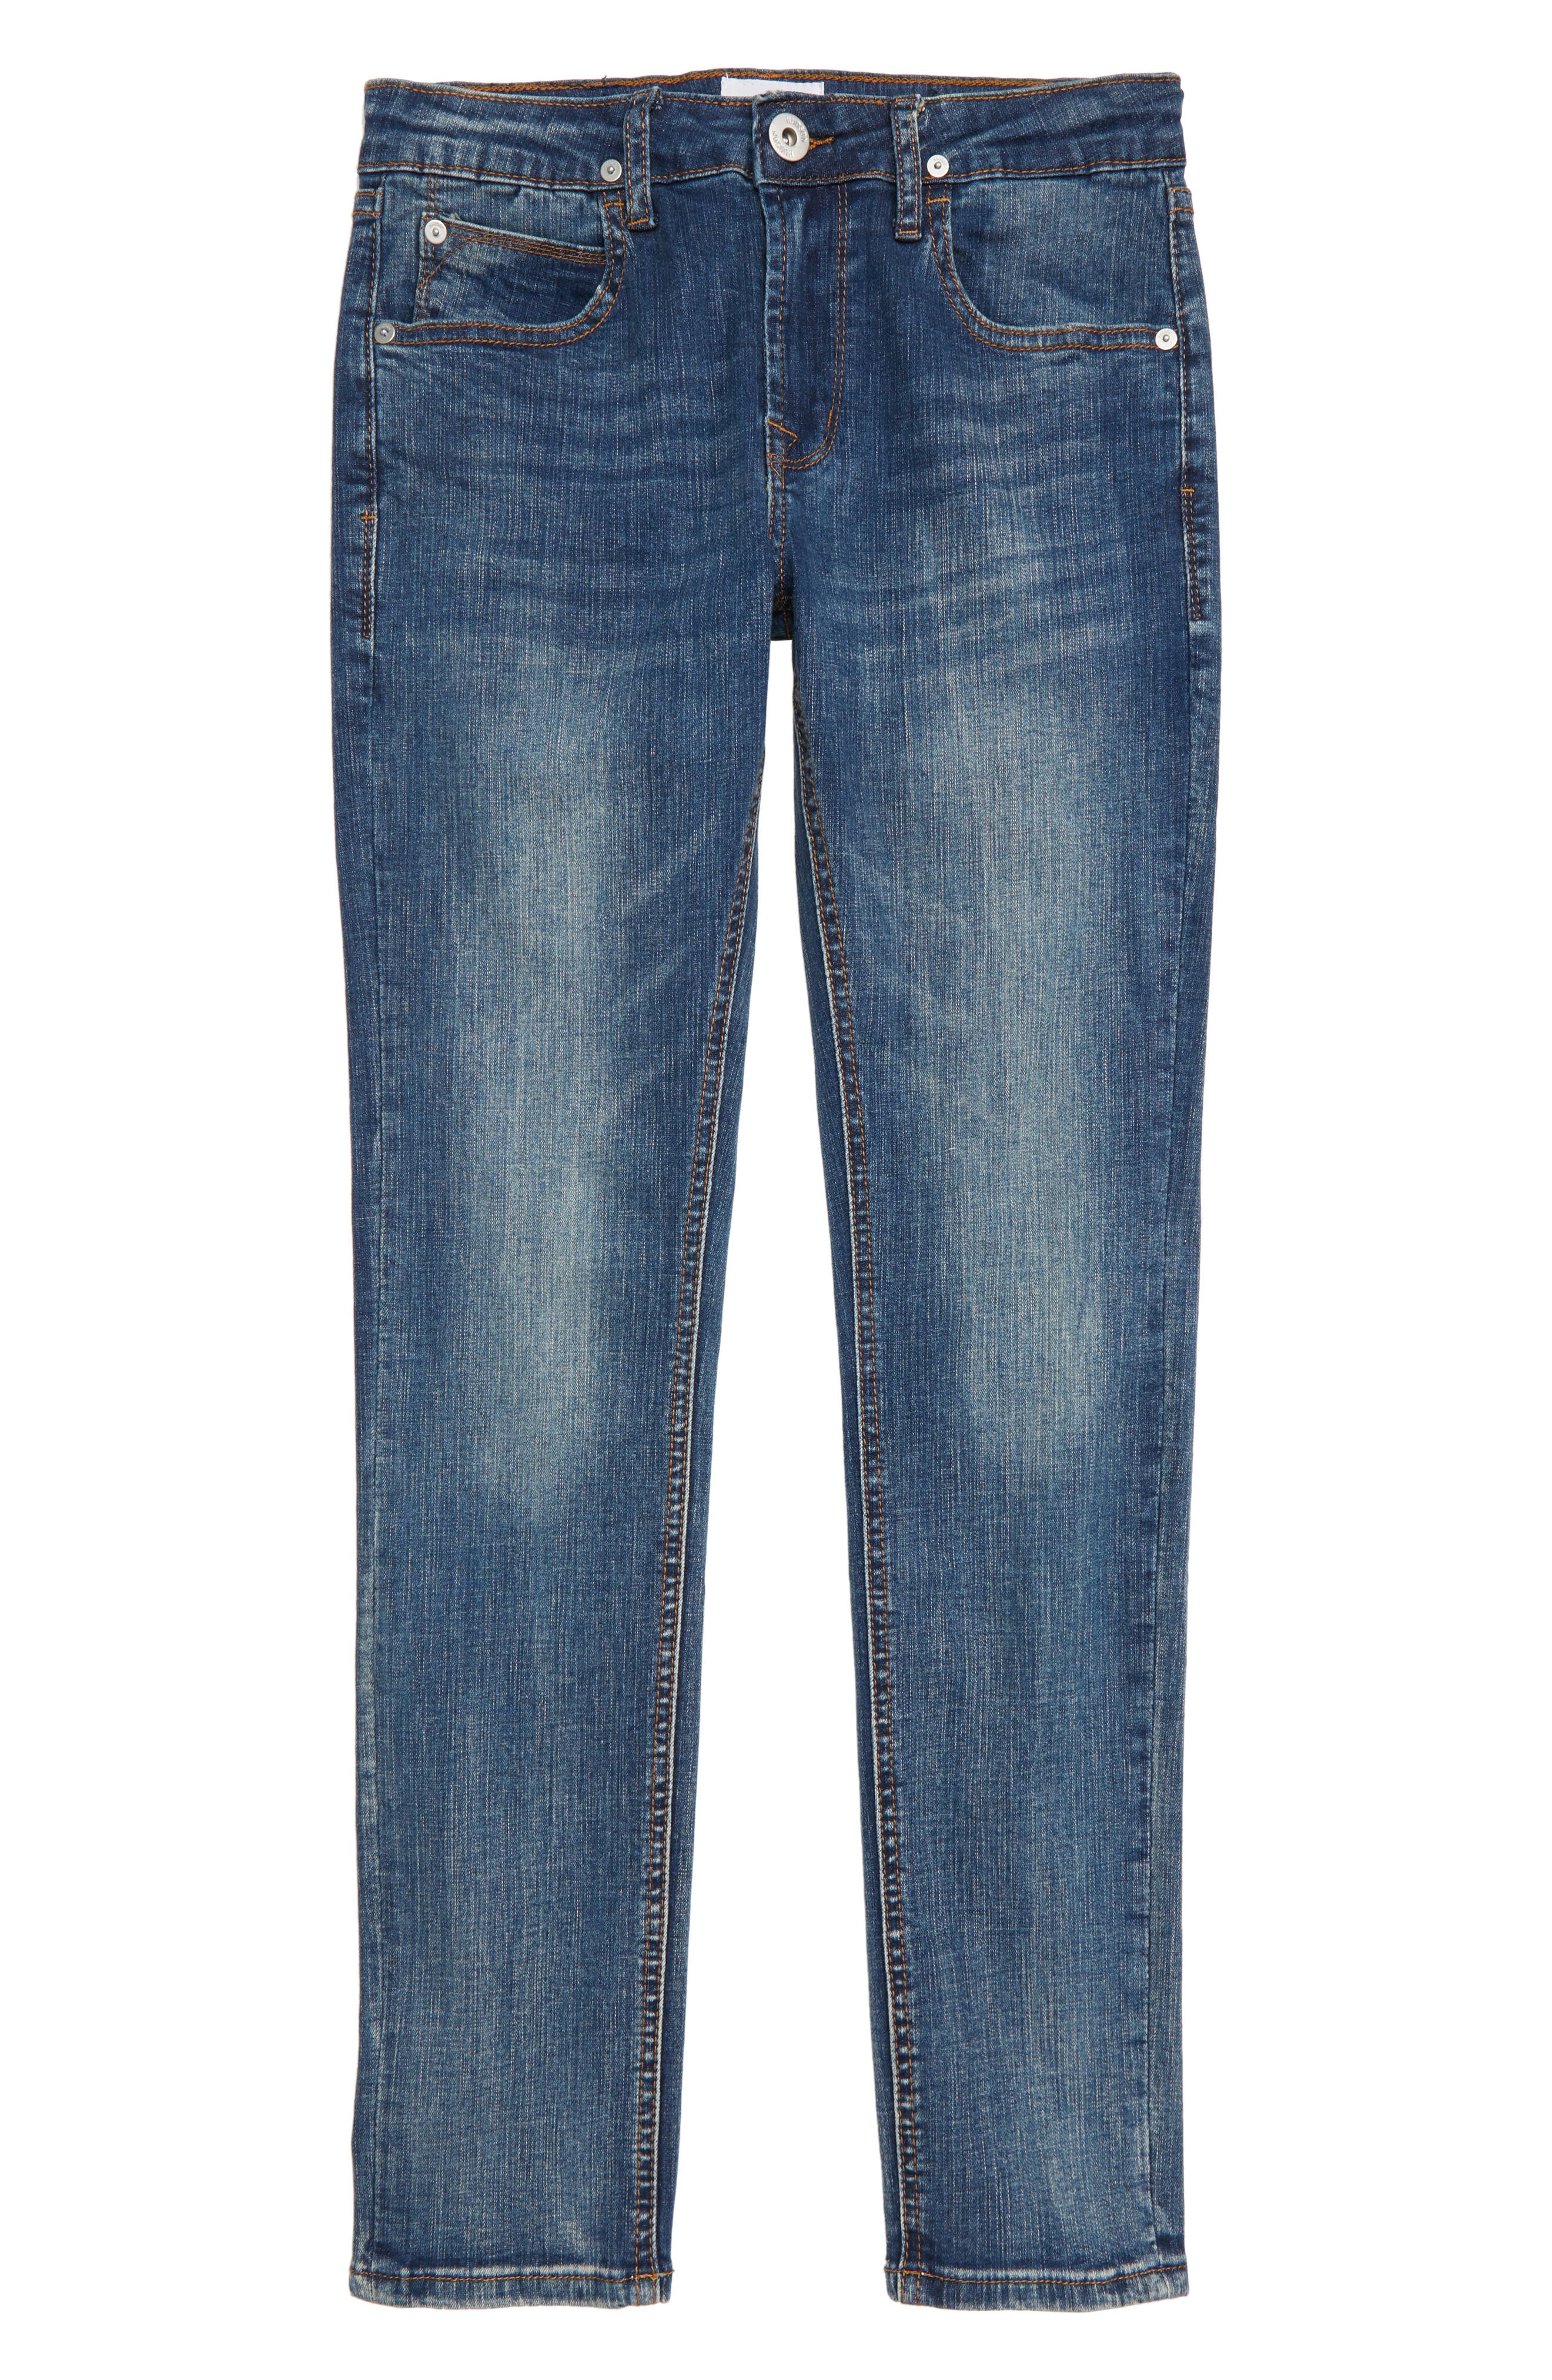 Jude Skinny Jeans,                         Main,                         color,